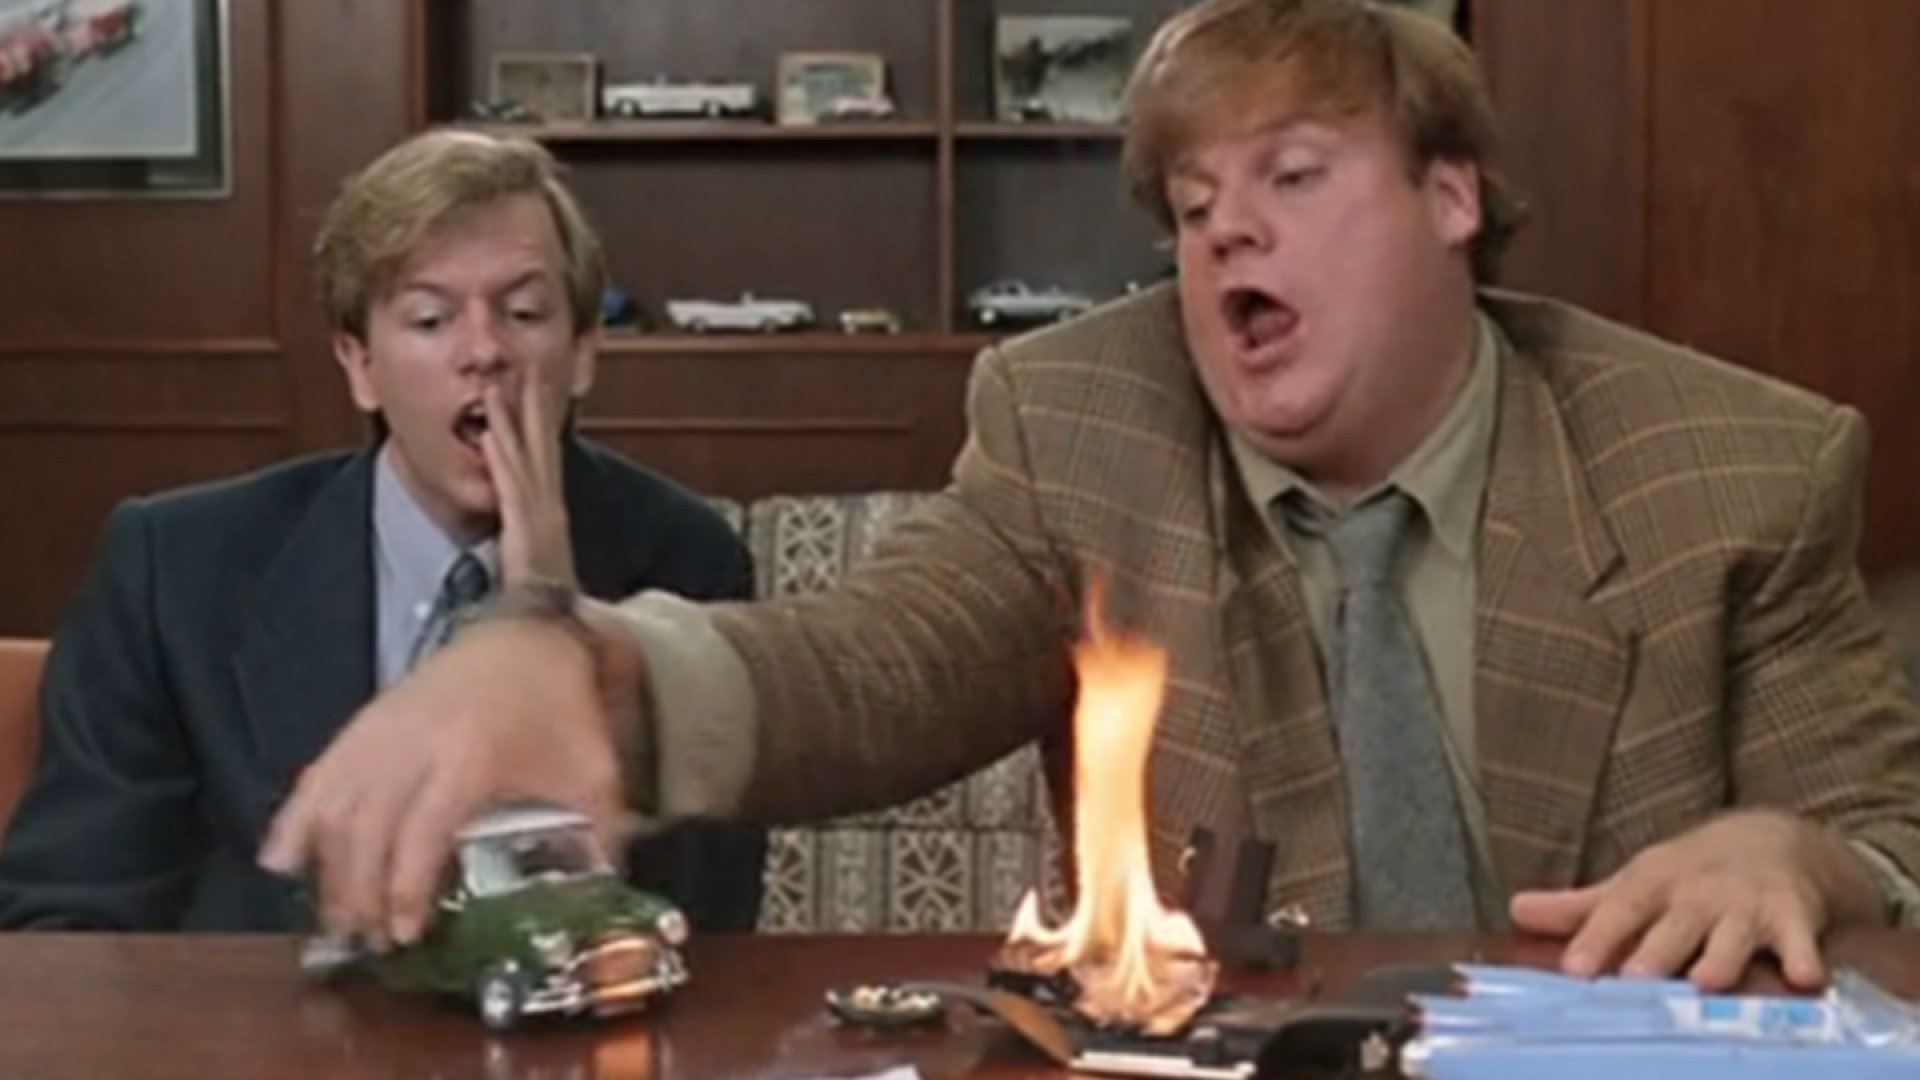 Chris Farley and David Spade in <i>Tommy Boy</i> waste an executive's time during a sales meeting.